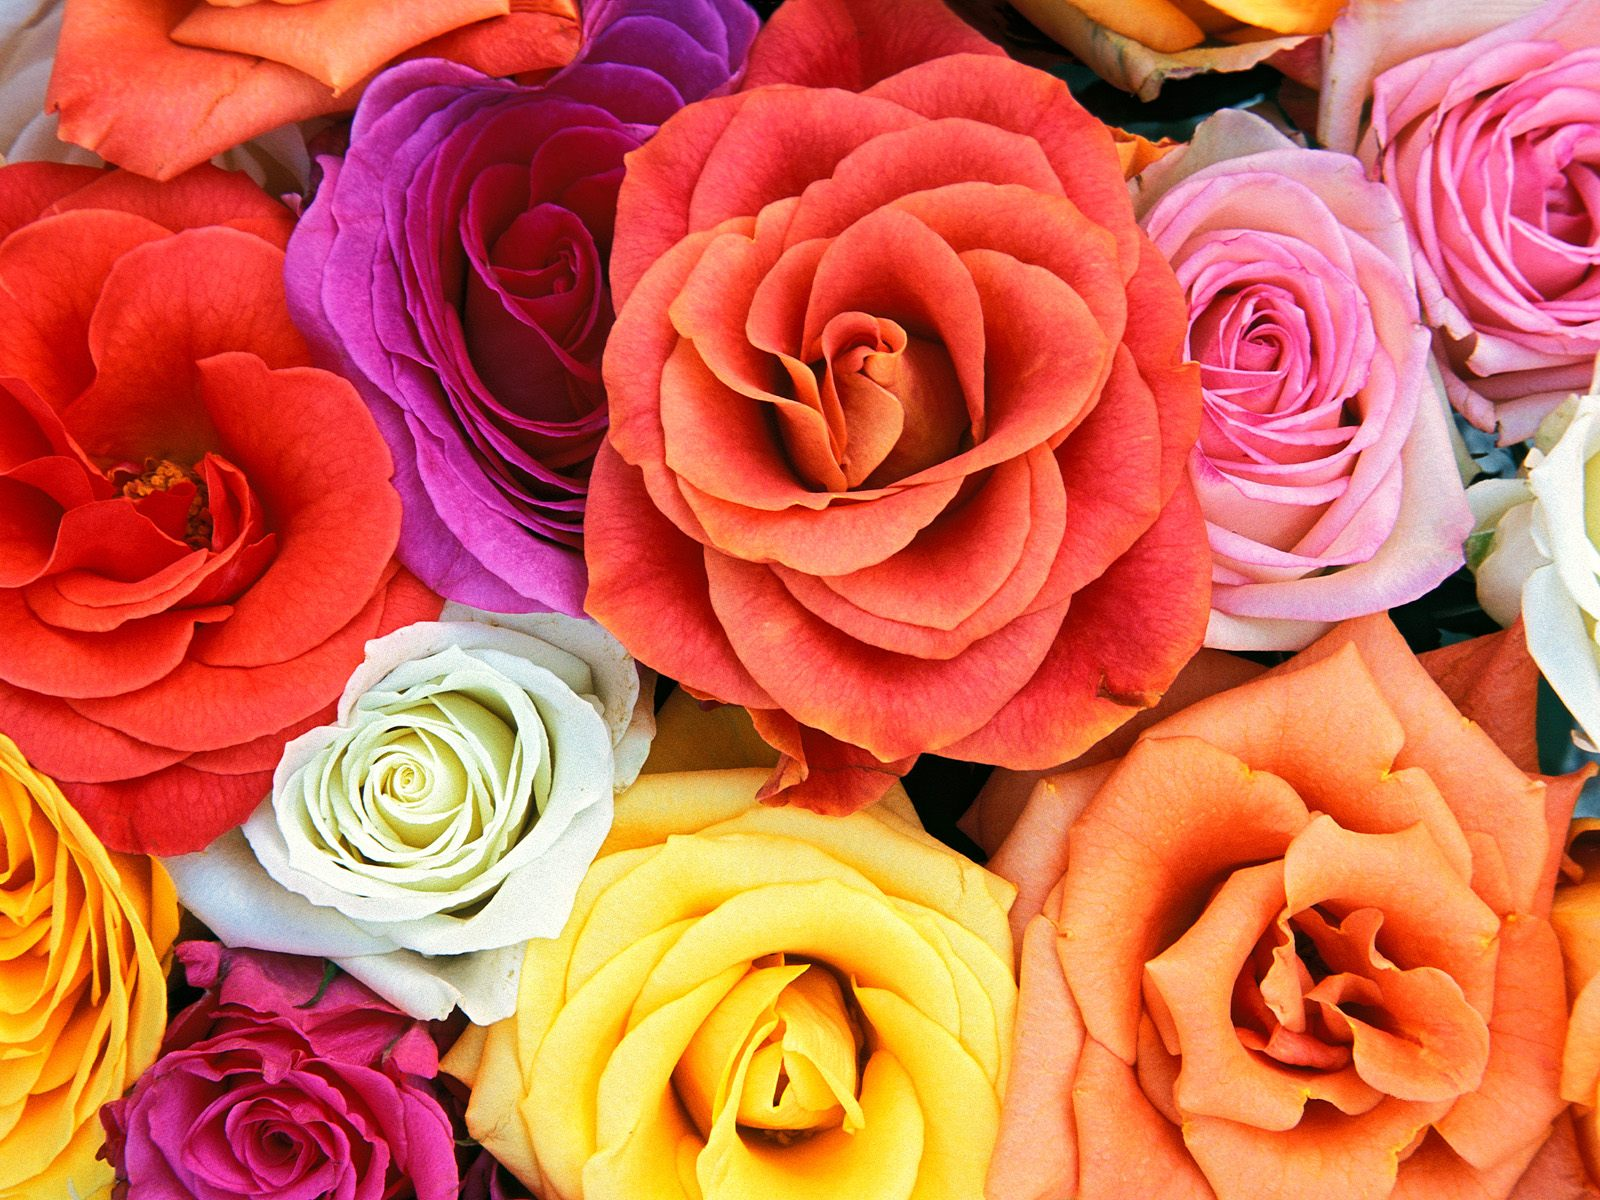 Imagenes De Rosas De Todo Color - Fotos de rosas de colores YouTube